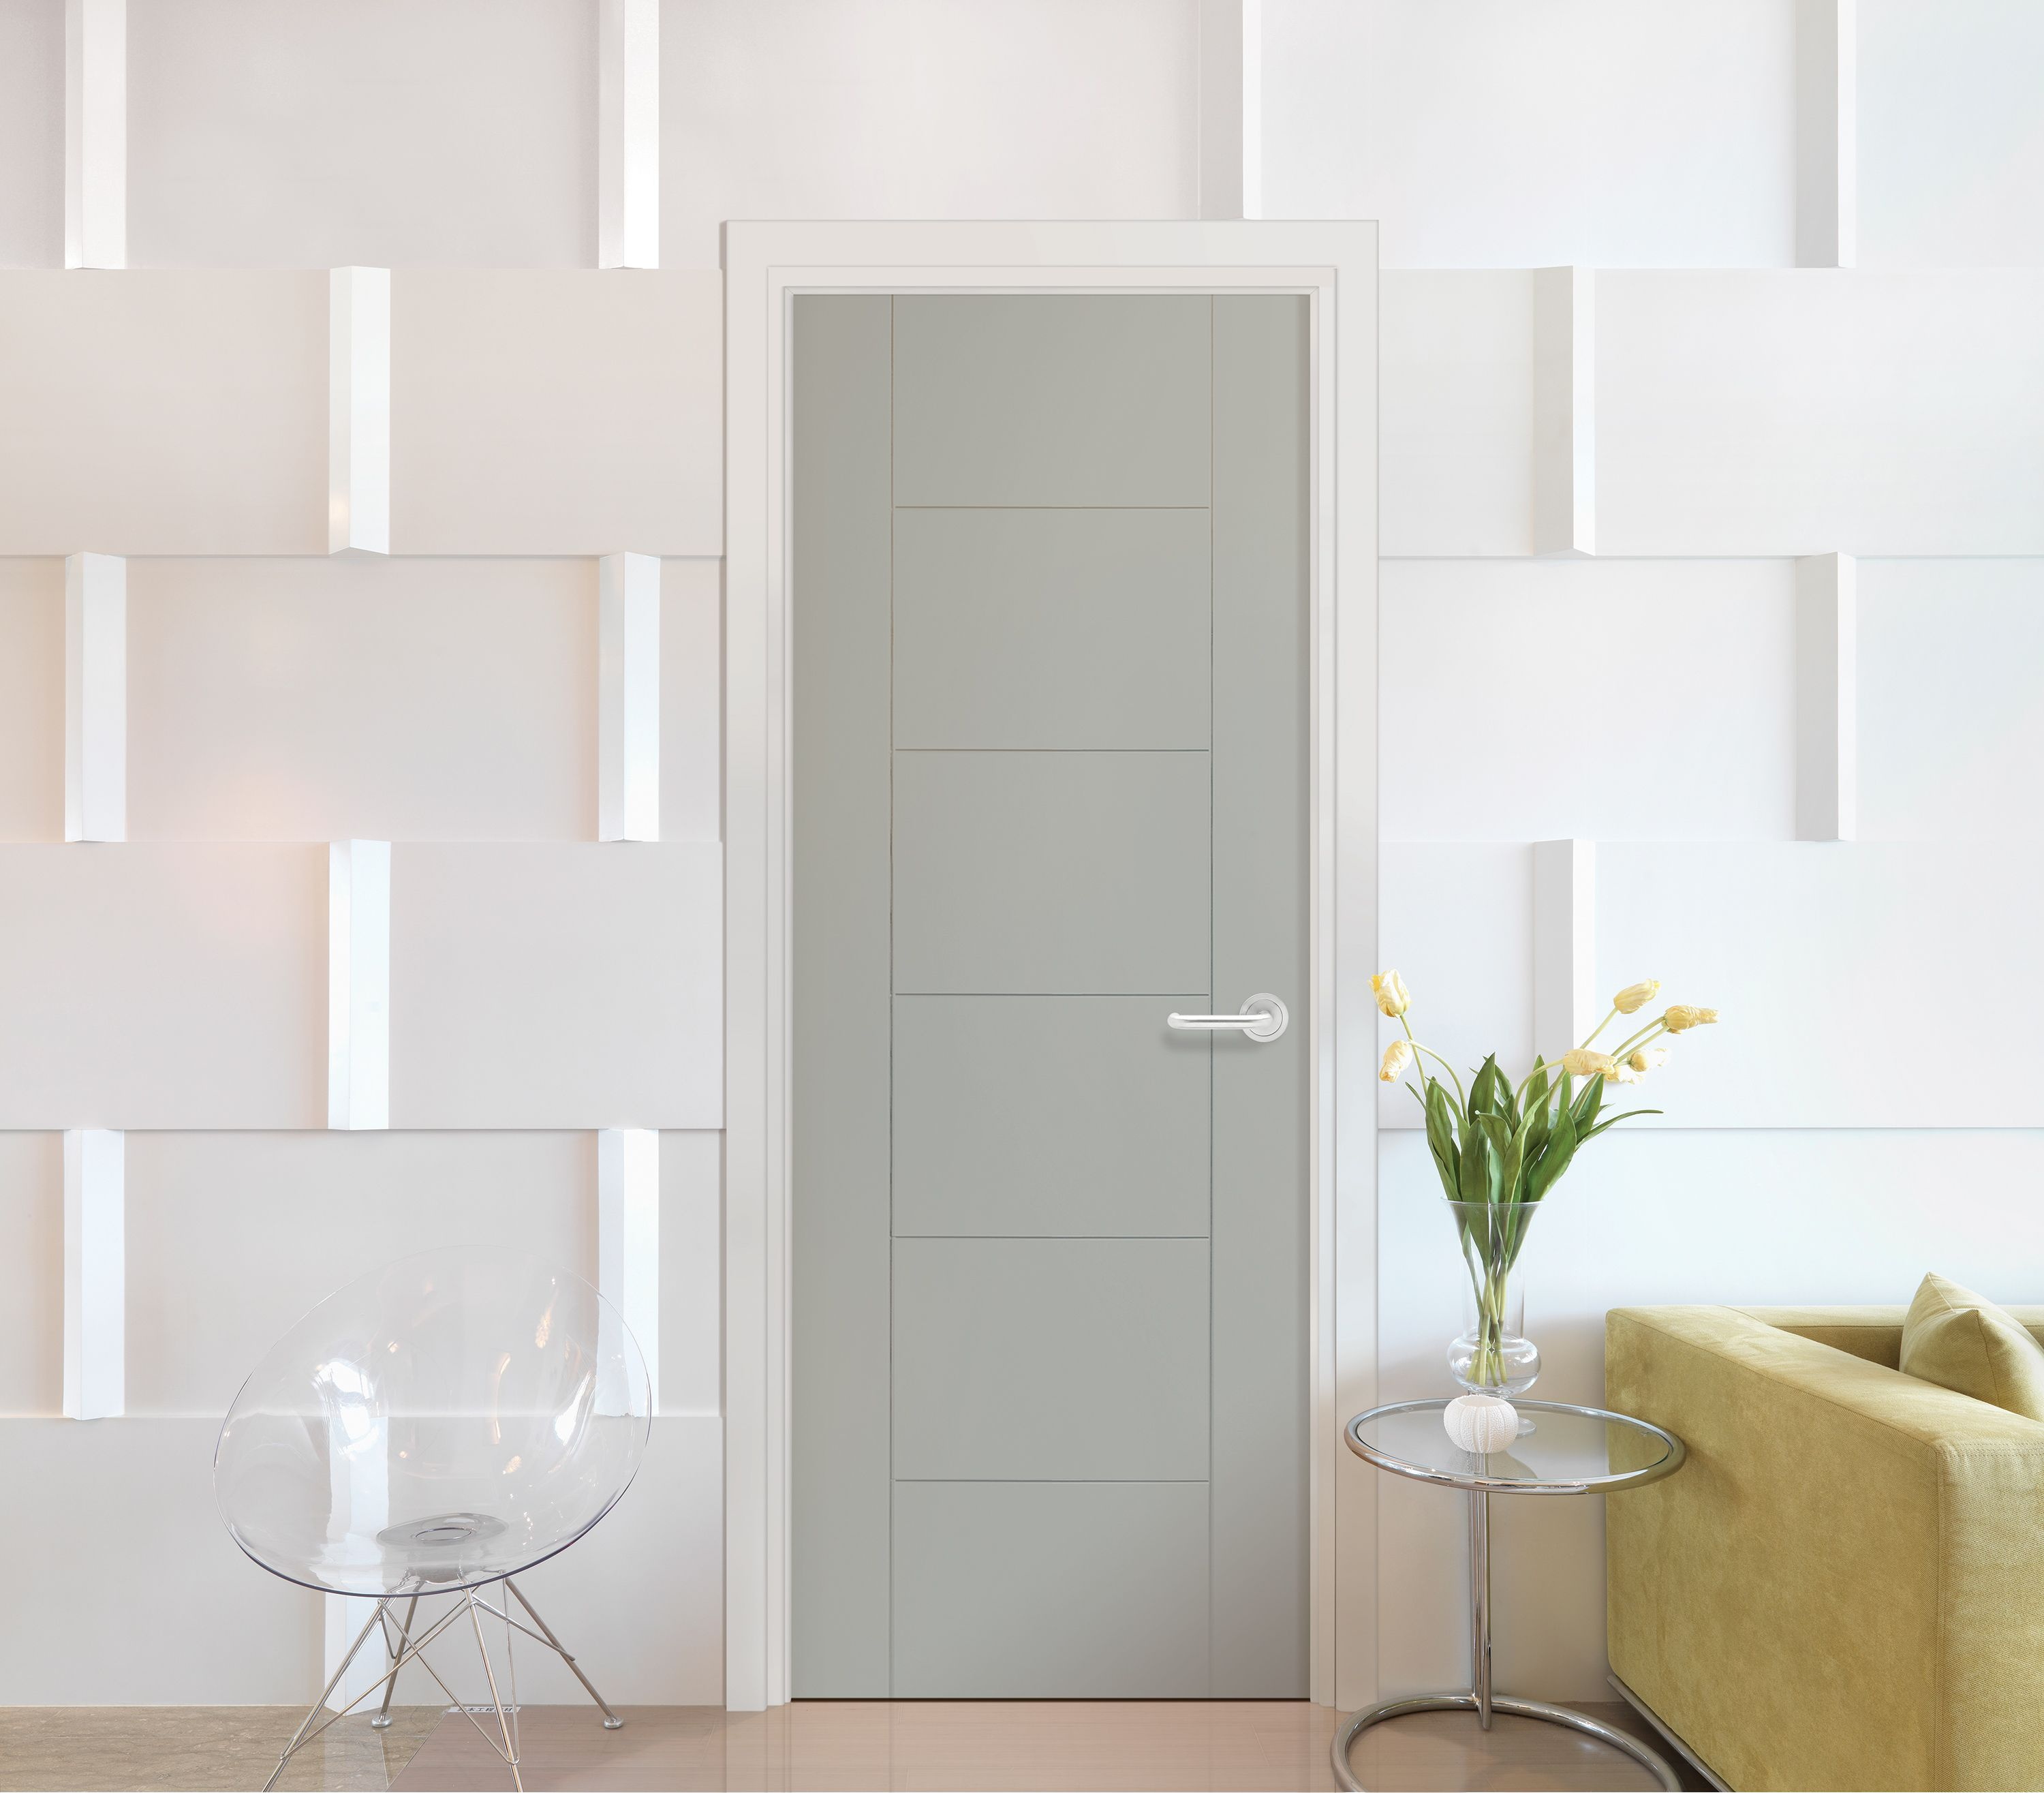 Masonite West End Collection Hamel Interior Doors